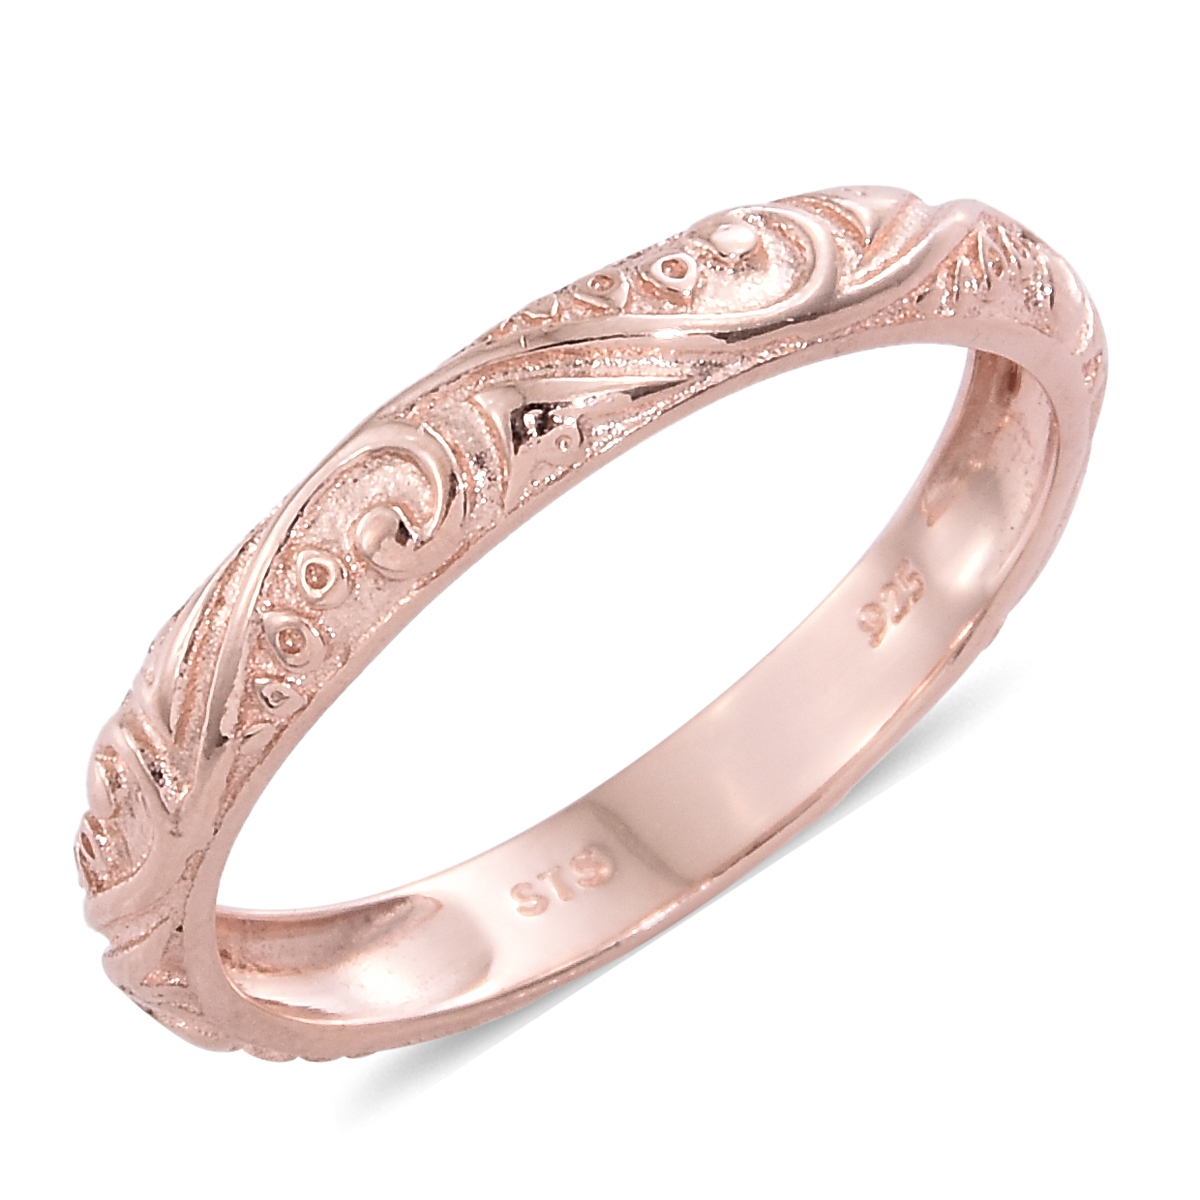 14K RG Over Sterling Silver Ring (Size 10.0) | fashion | rings ...